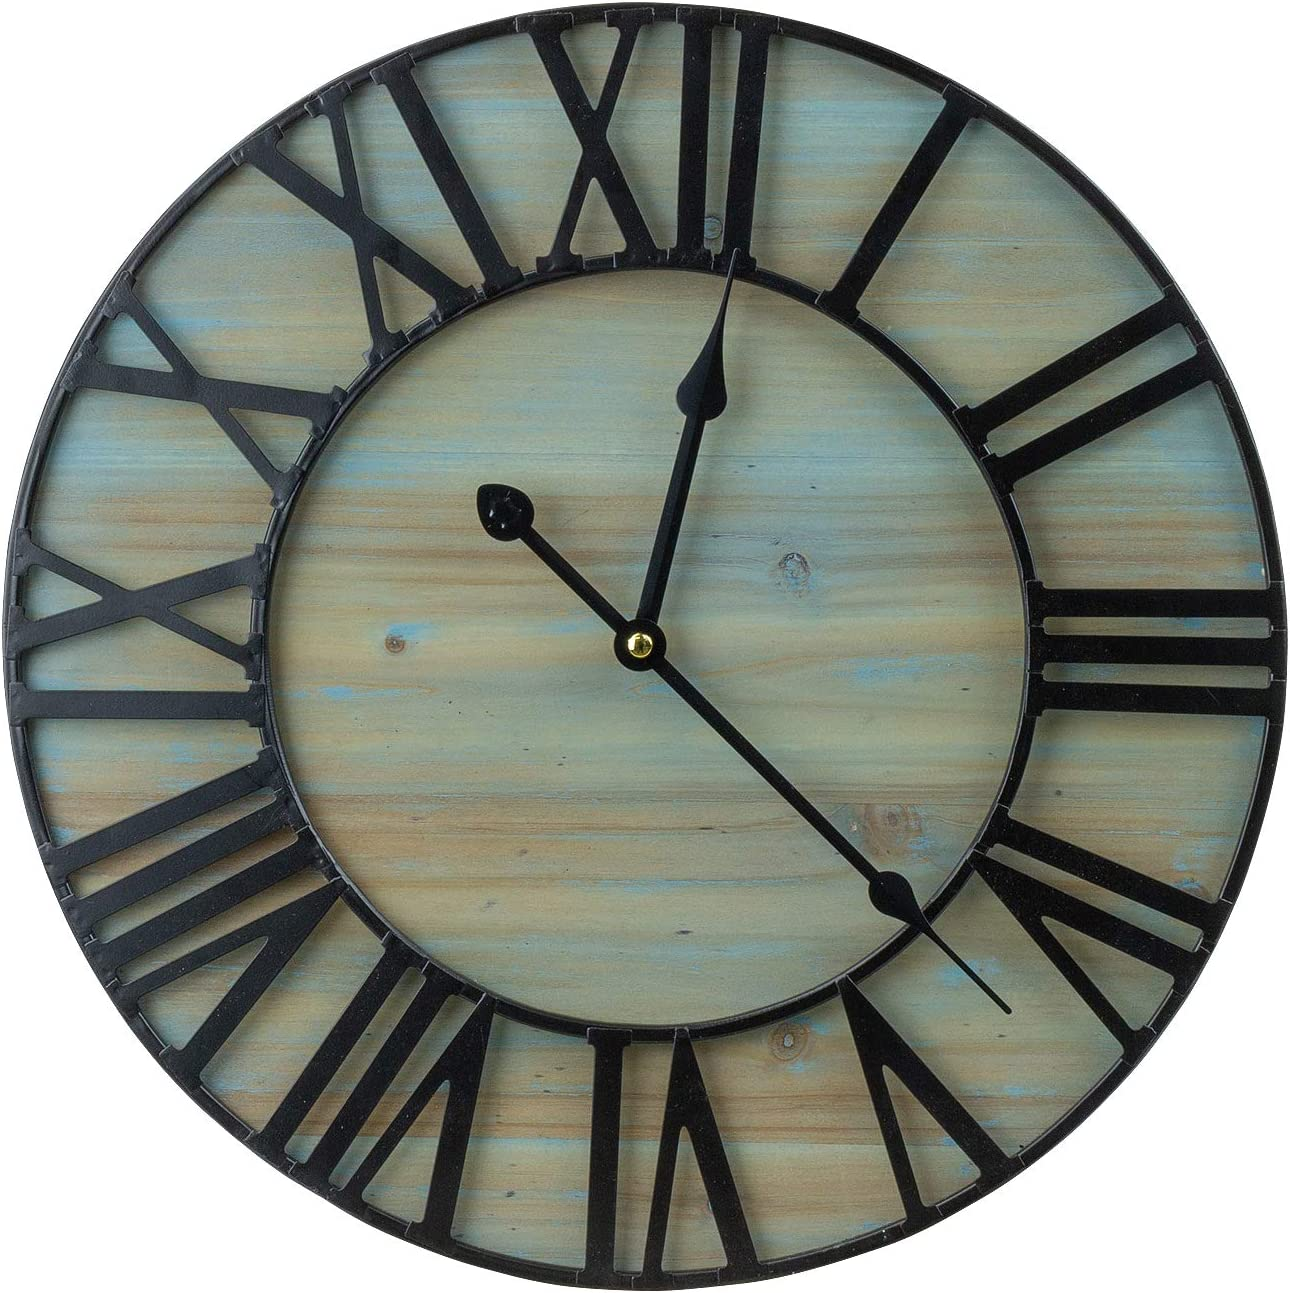 "Sorbus Large Decorative Wall Clock, 16"" Round Centurion Roman Numeral Hands, Coastal Beach, Big Farmhouse Rustic Vintage Modern Style Home Decor Ideal for Living Room, Analog Wood Metal Clock"